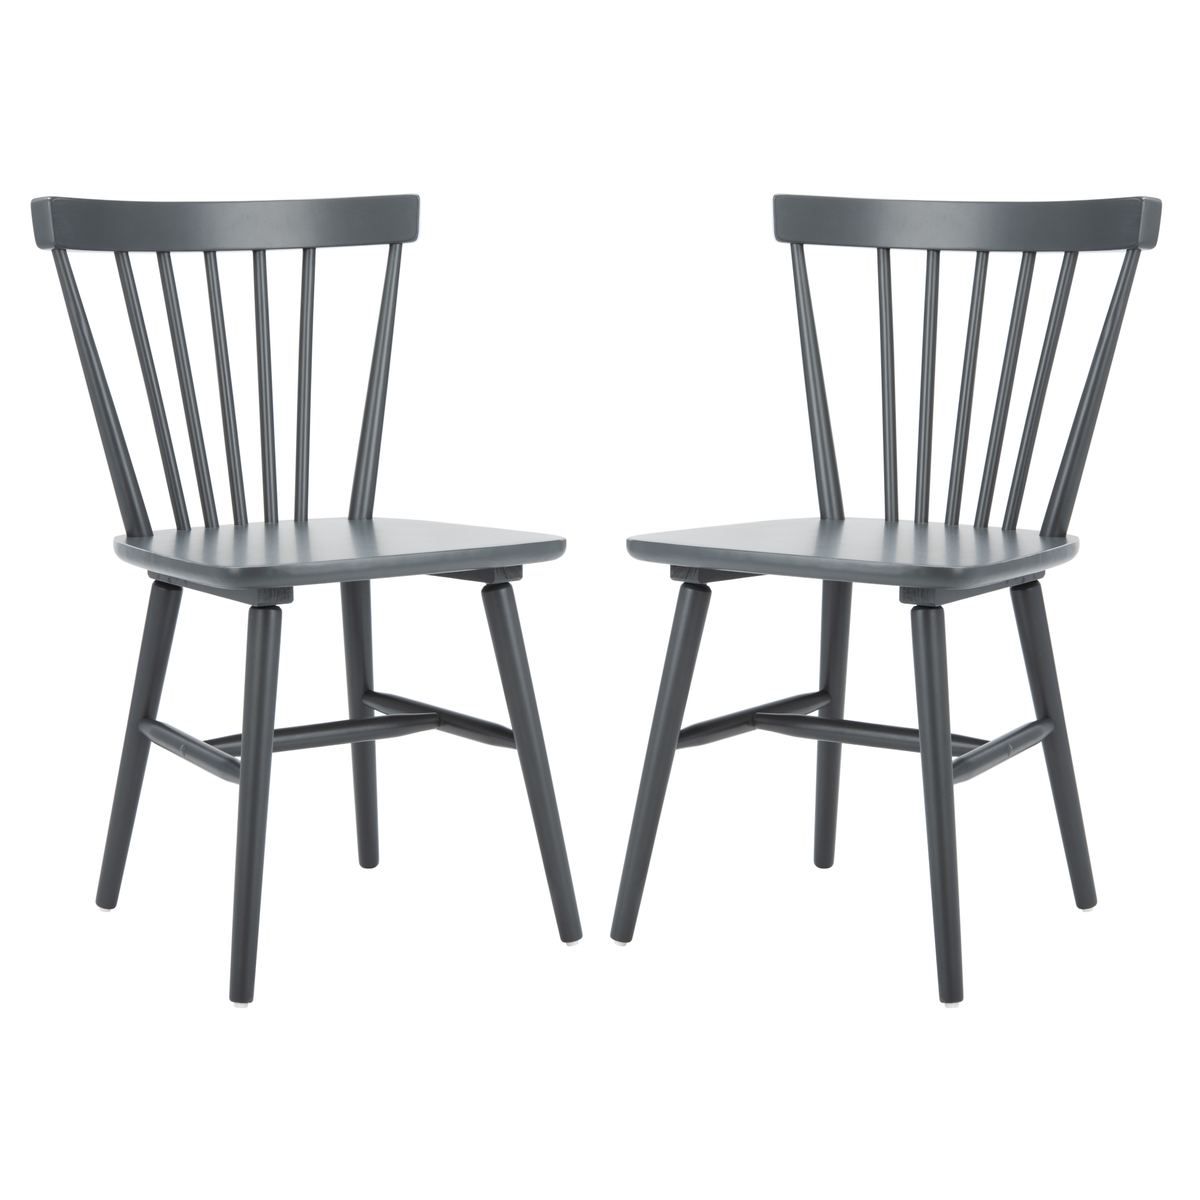 Grey Winona Spindle Dining Chair Set